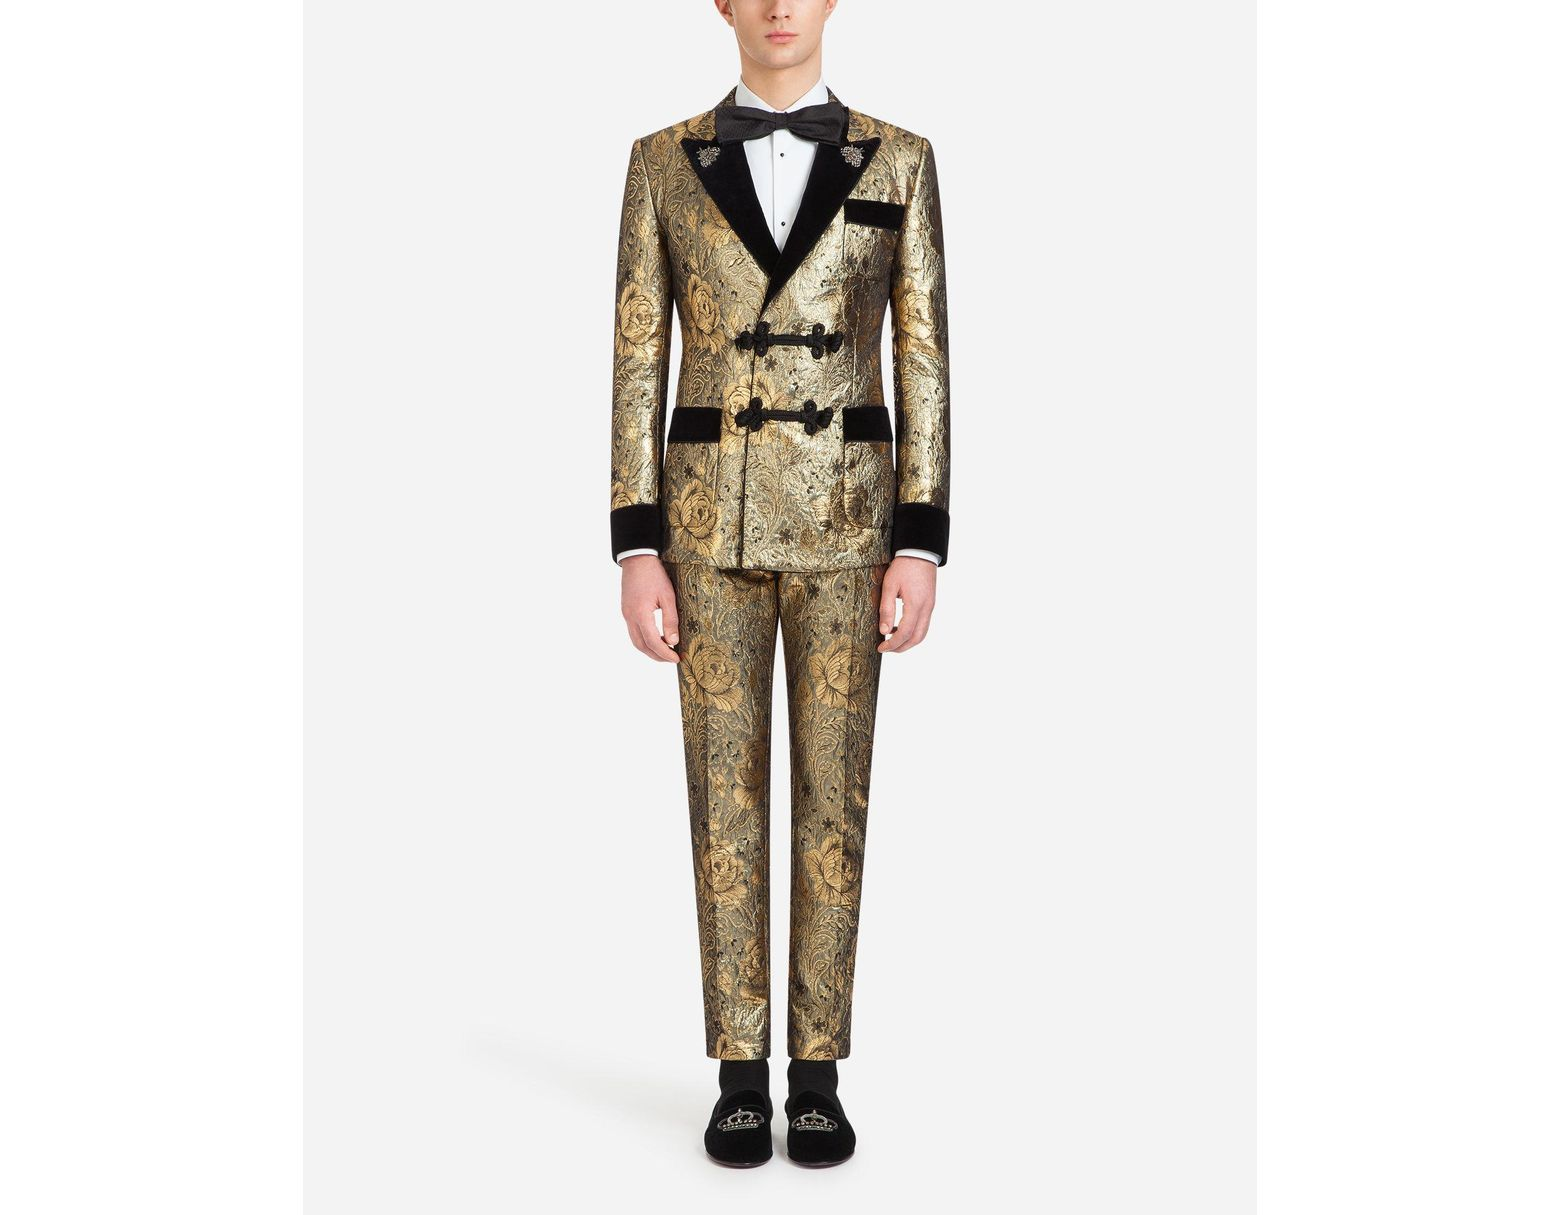 185c3826d1067 Dolce & Gabbana Tuxedo-style Smoking Jacket In Jacquard Wool With Patches  in Metallic for Men - Lyst